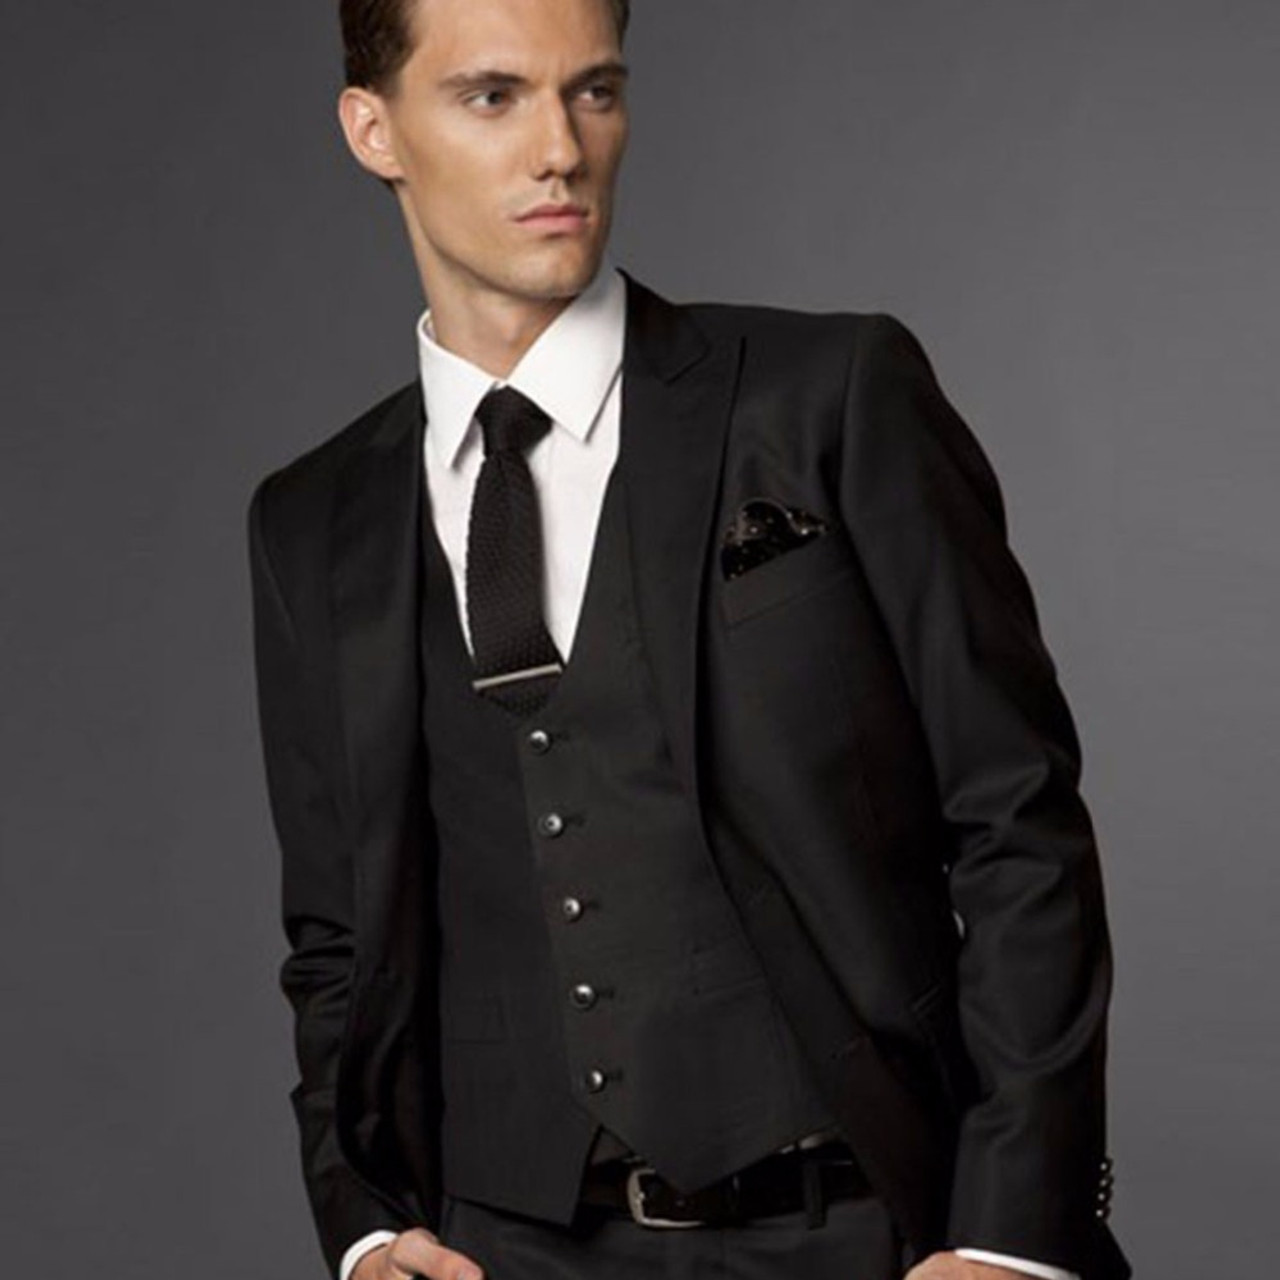 cf3e83a815e Black Wedding Suits For Men